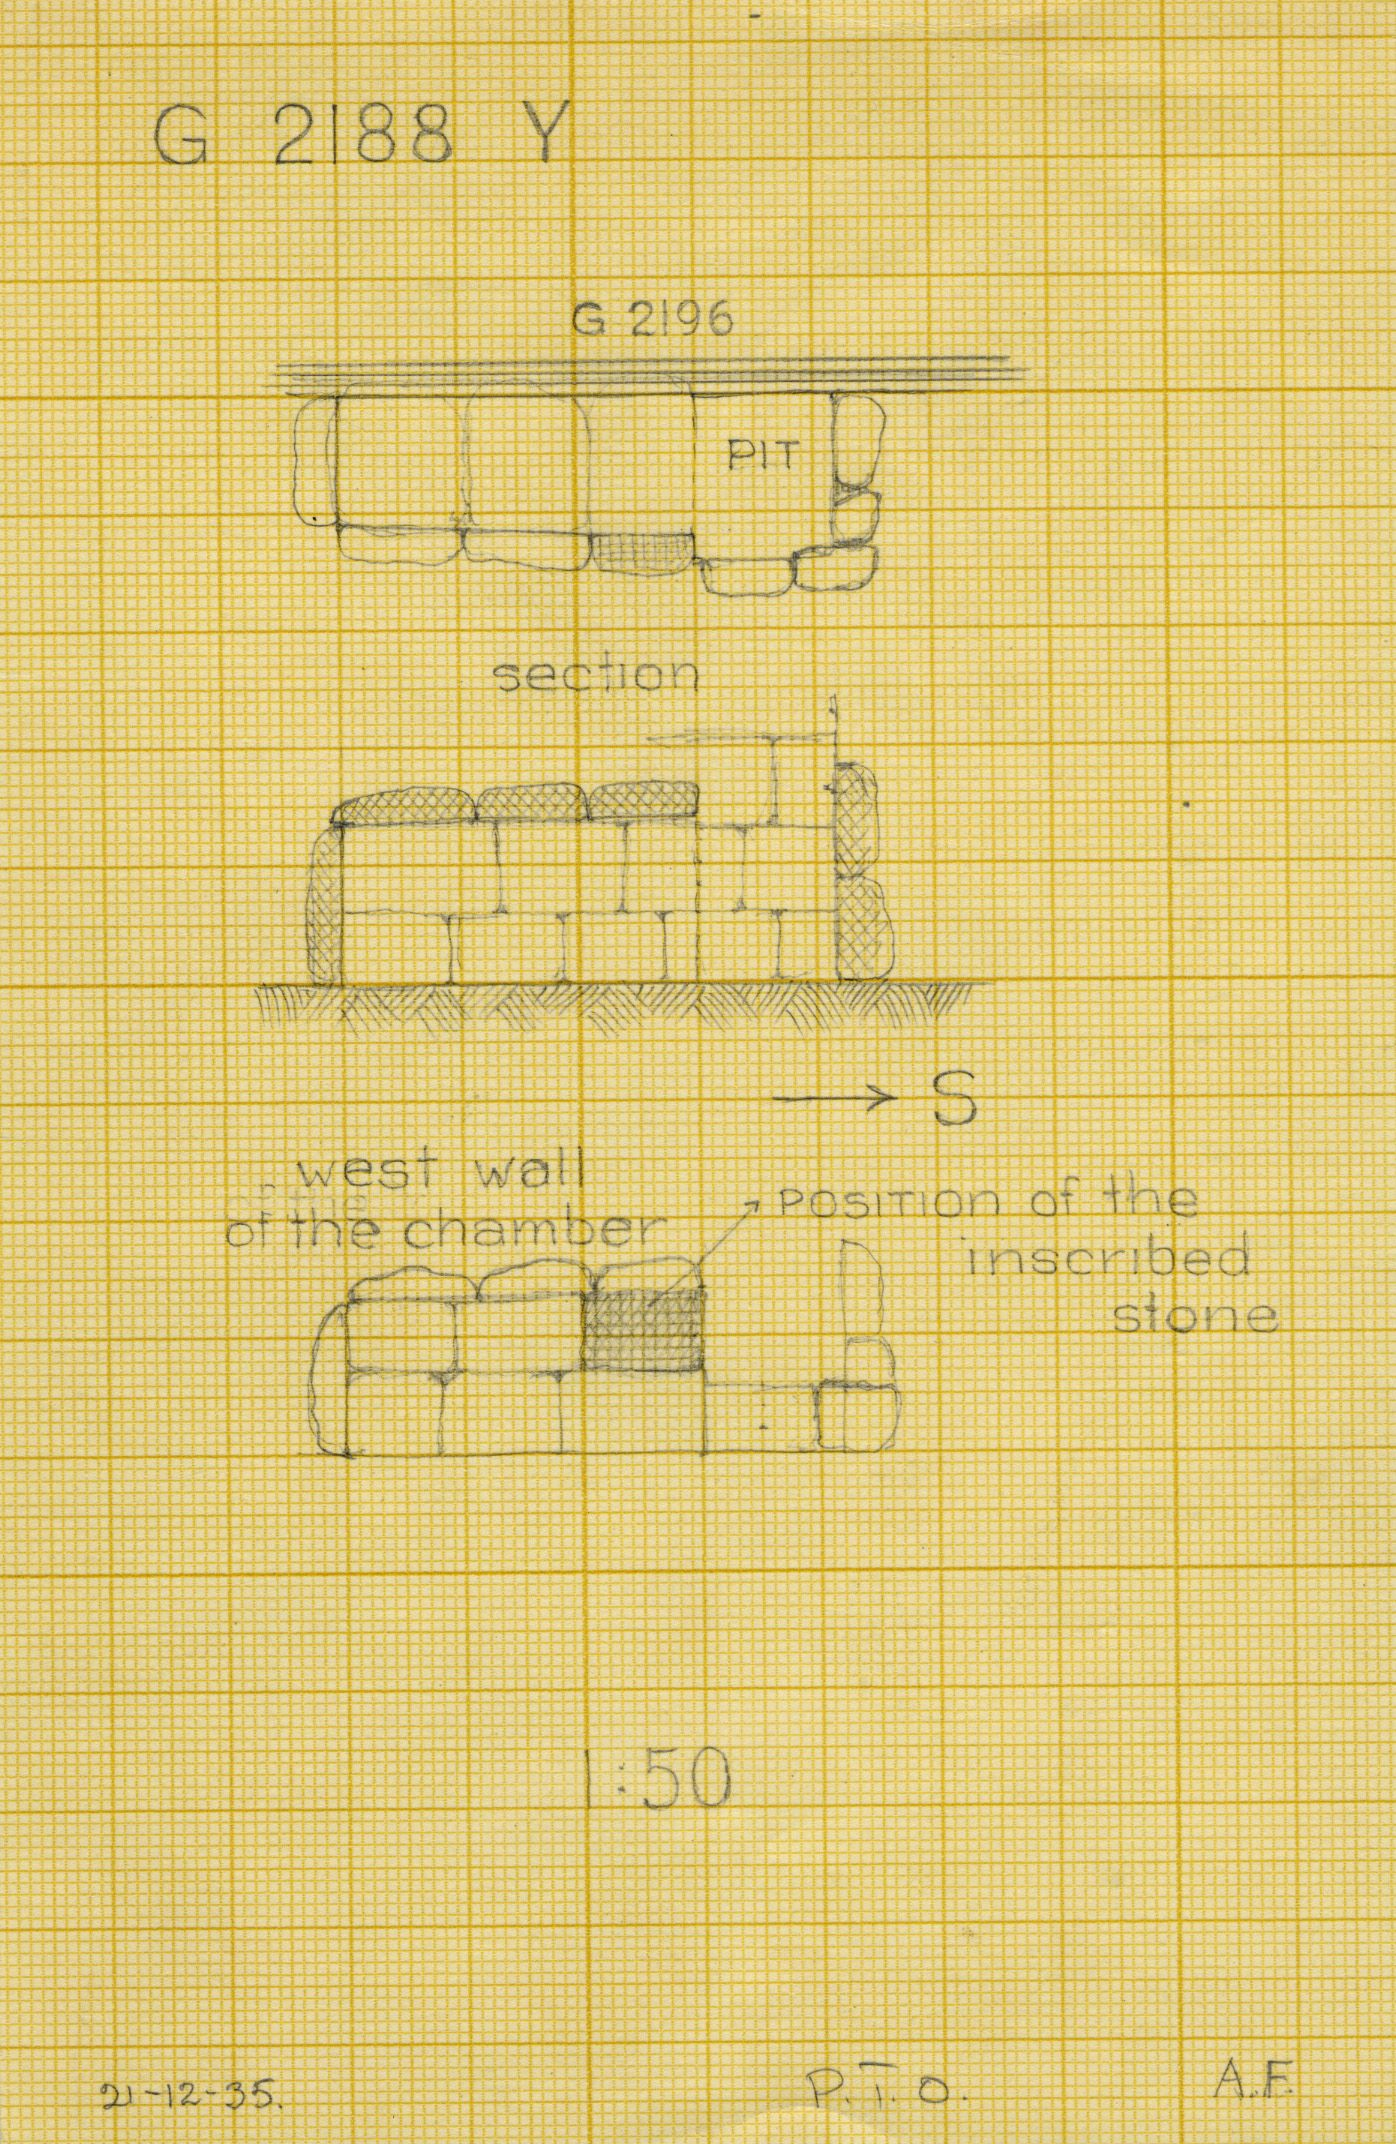 Maps and plans: G 2188, Shaft Y